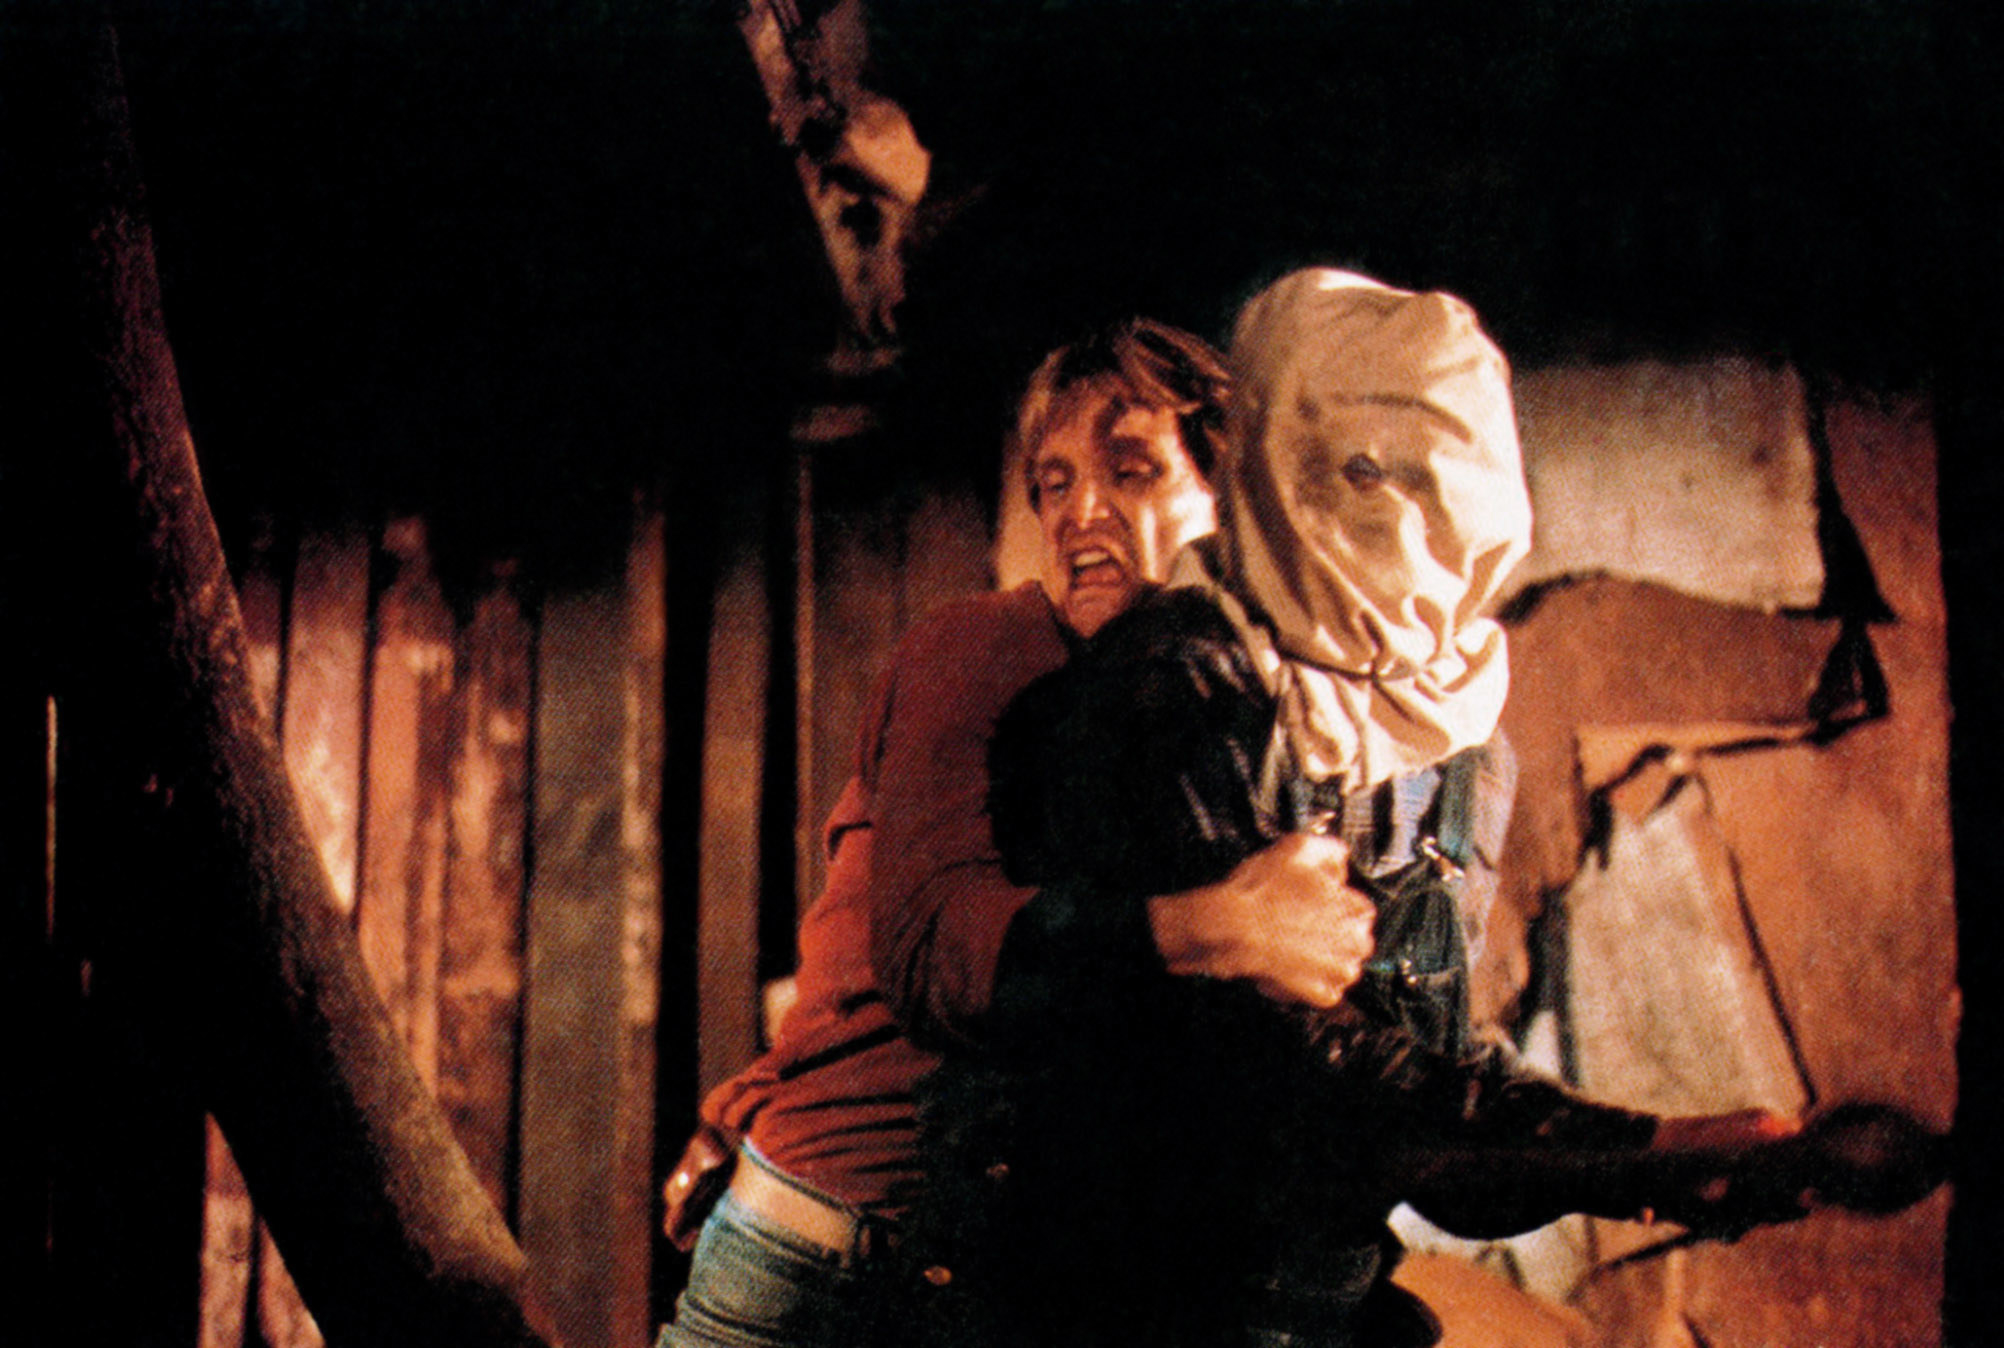 A young man fighting Jason who's wearing a burlap sack over his head